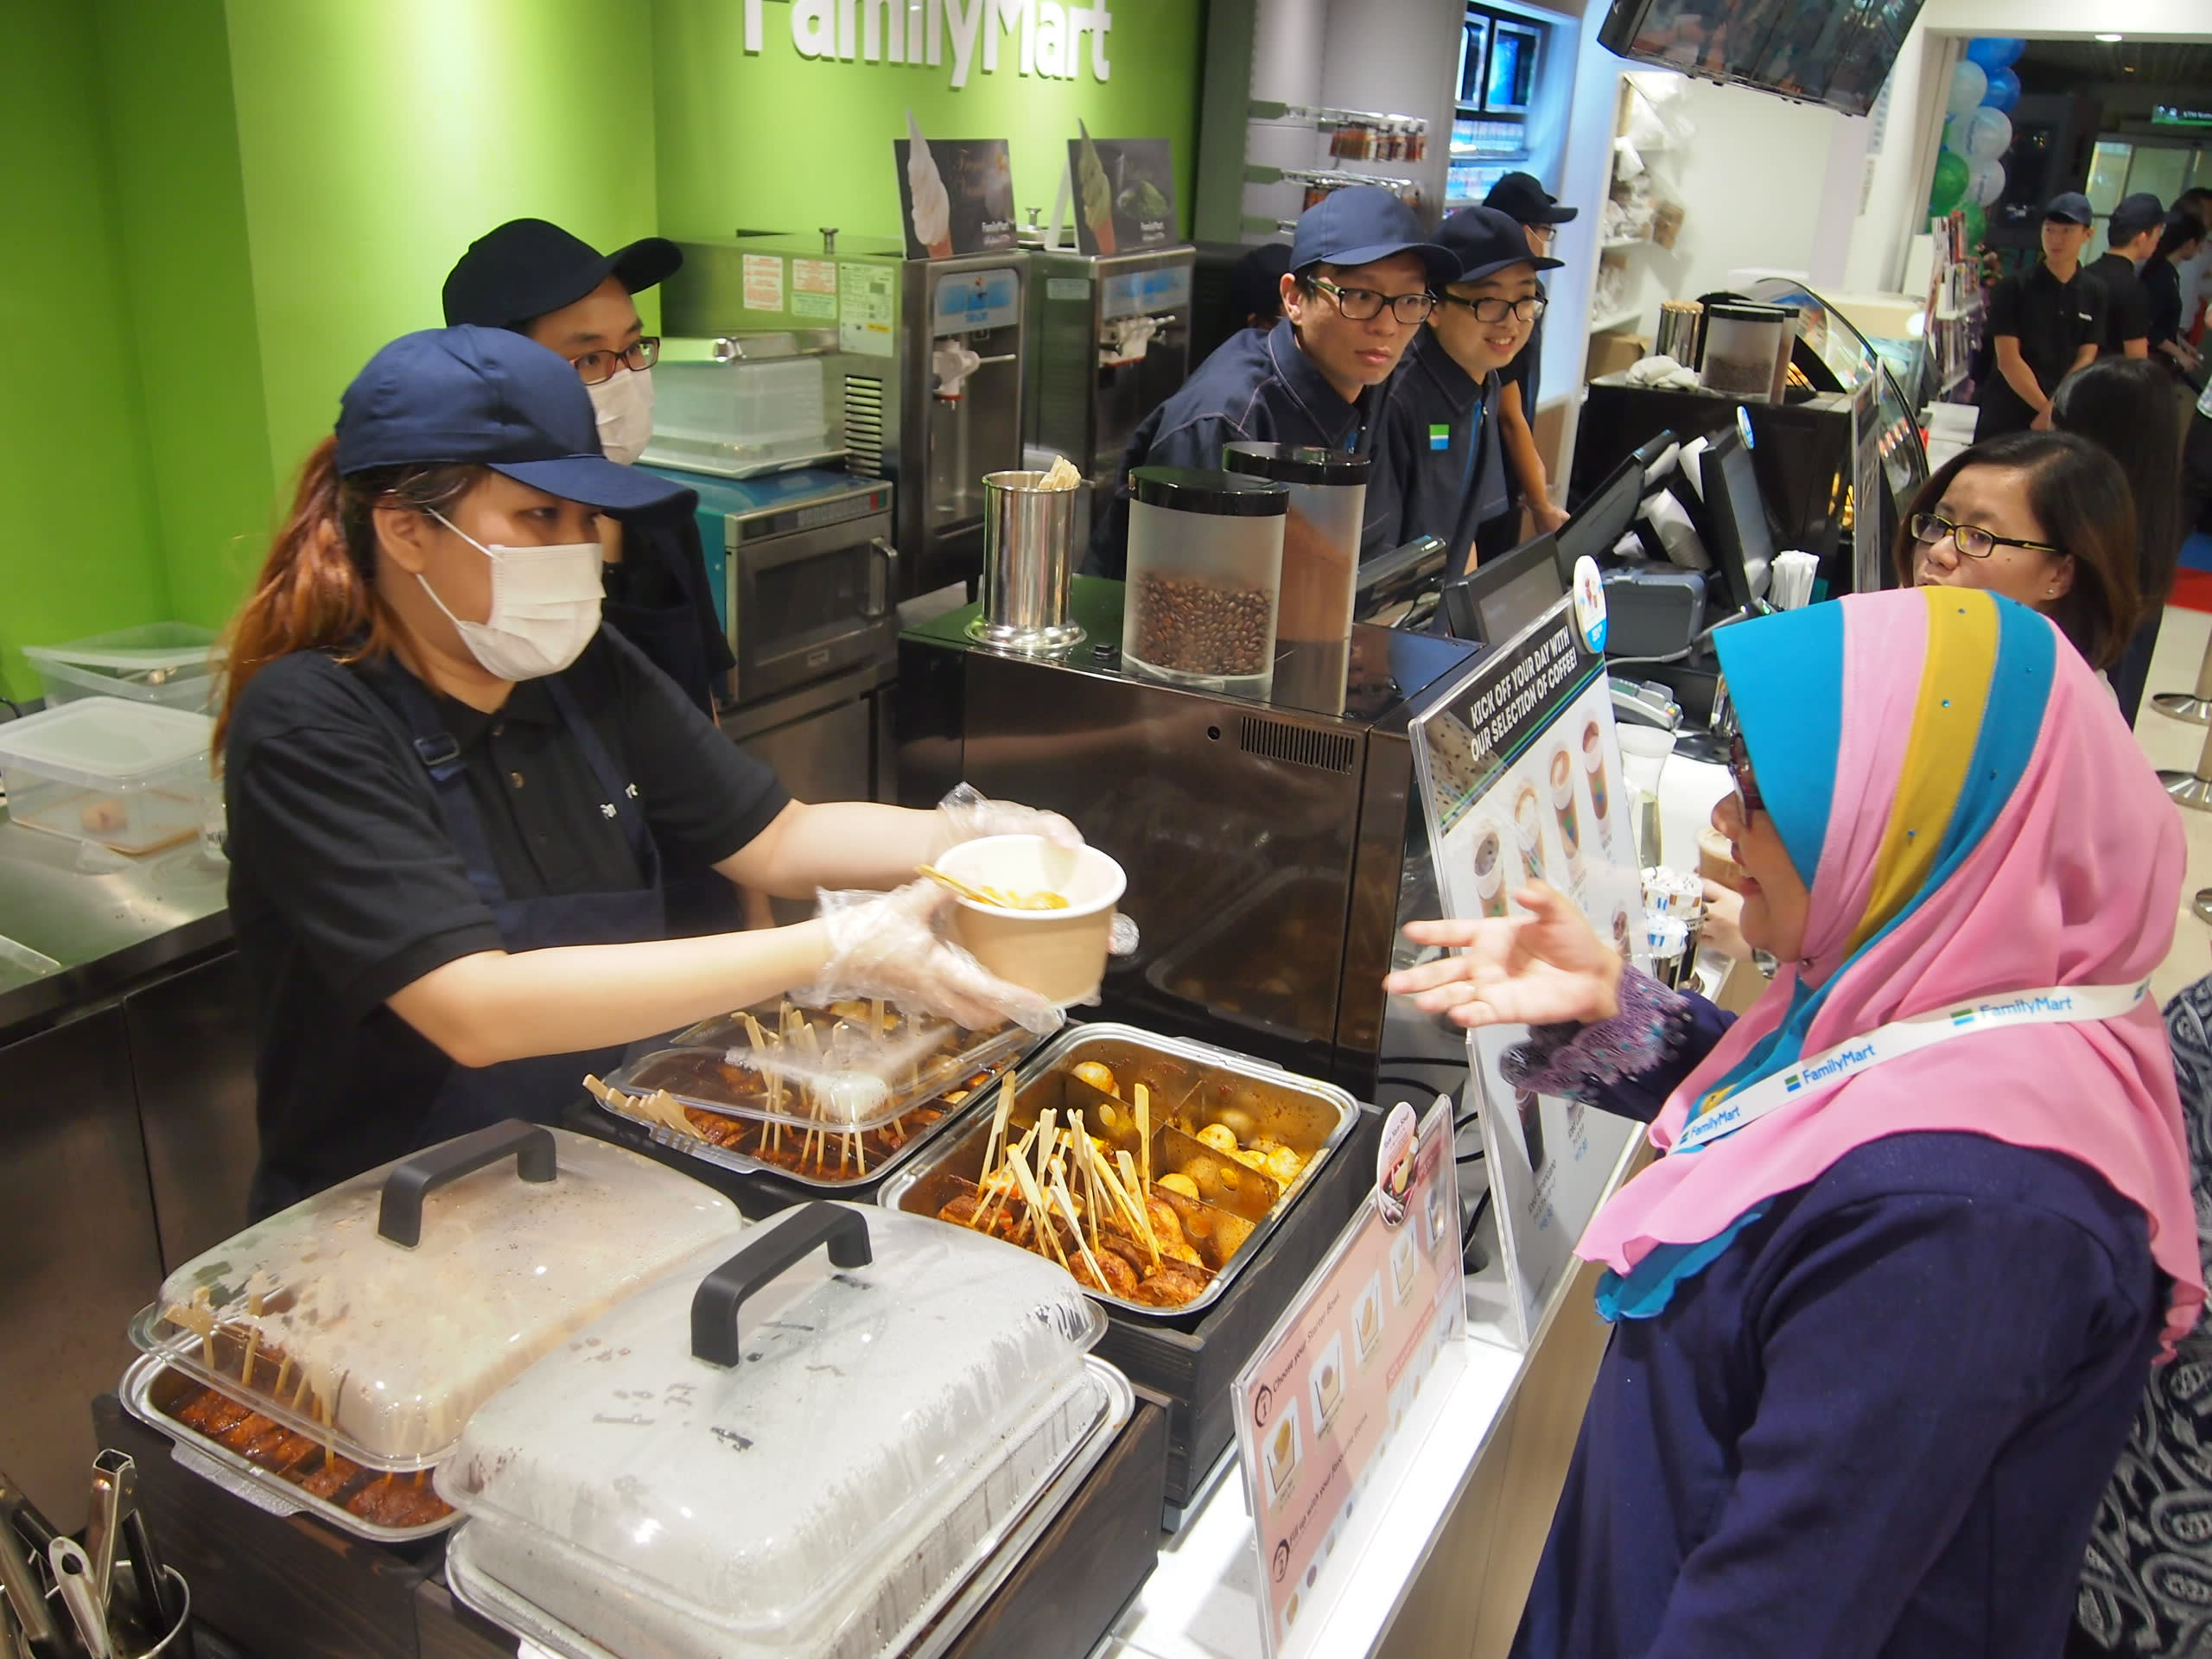 Japan's FamilyMart eyes 1,000 Malaysian stores by 2025 - Nikkei